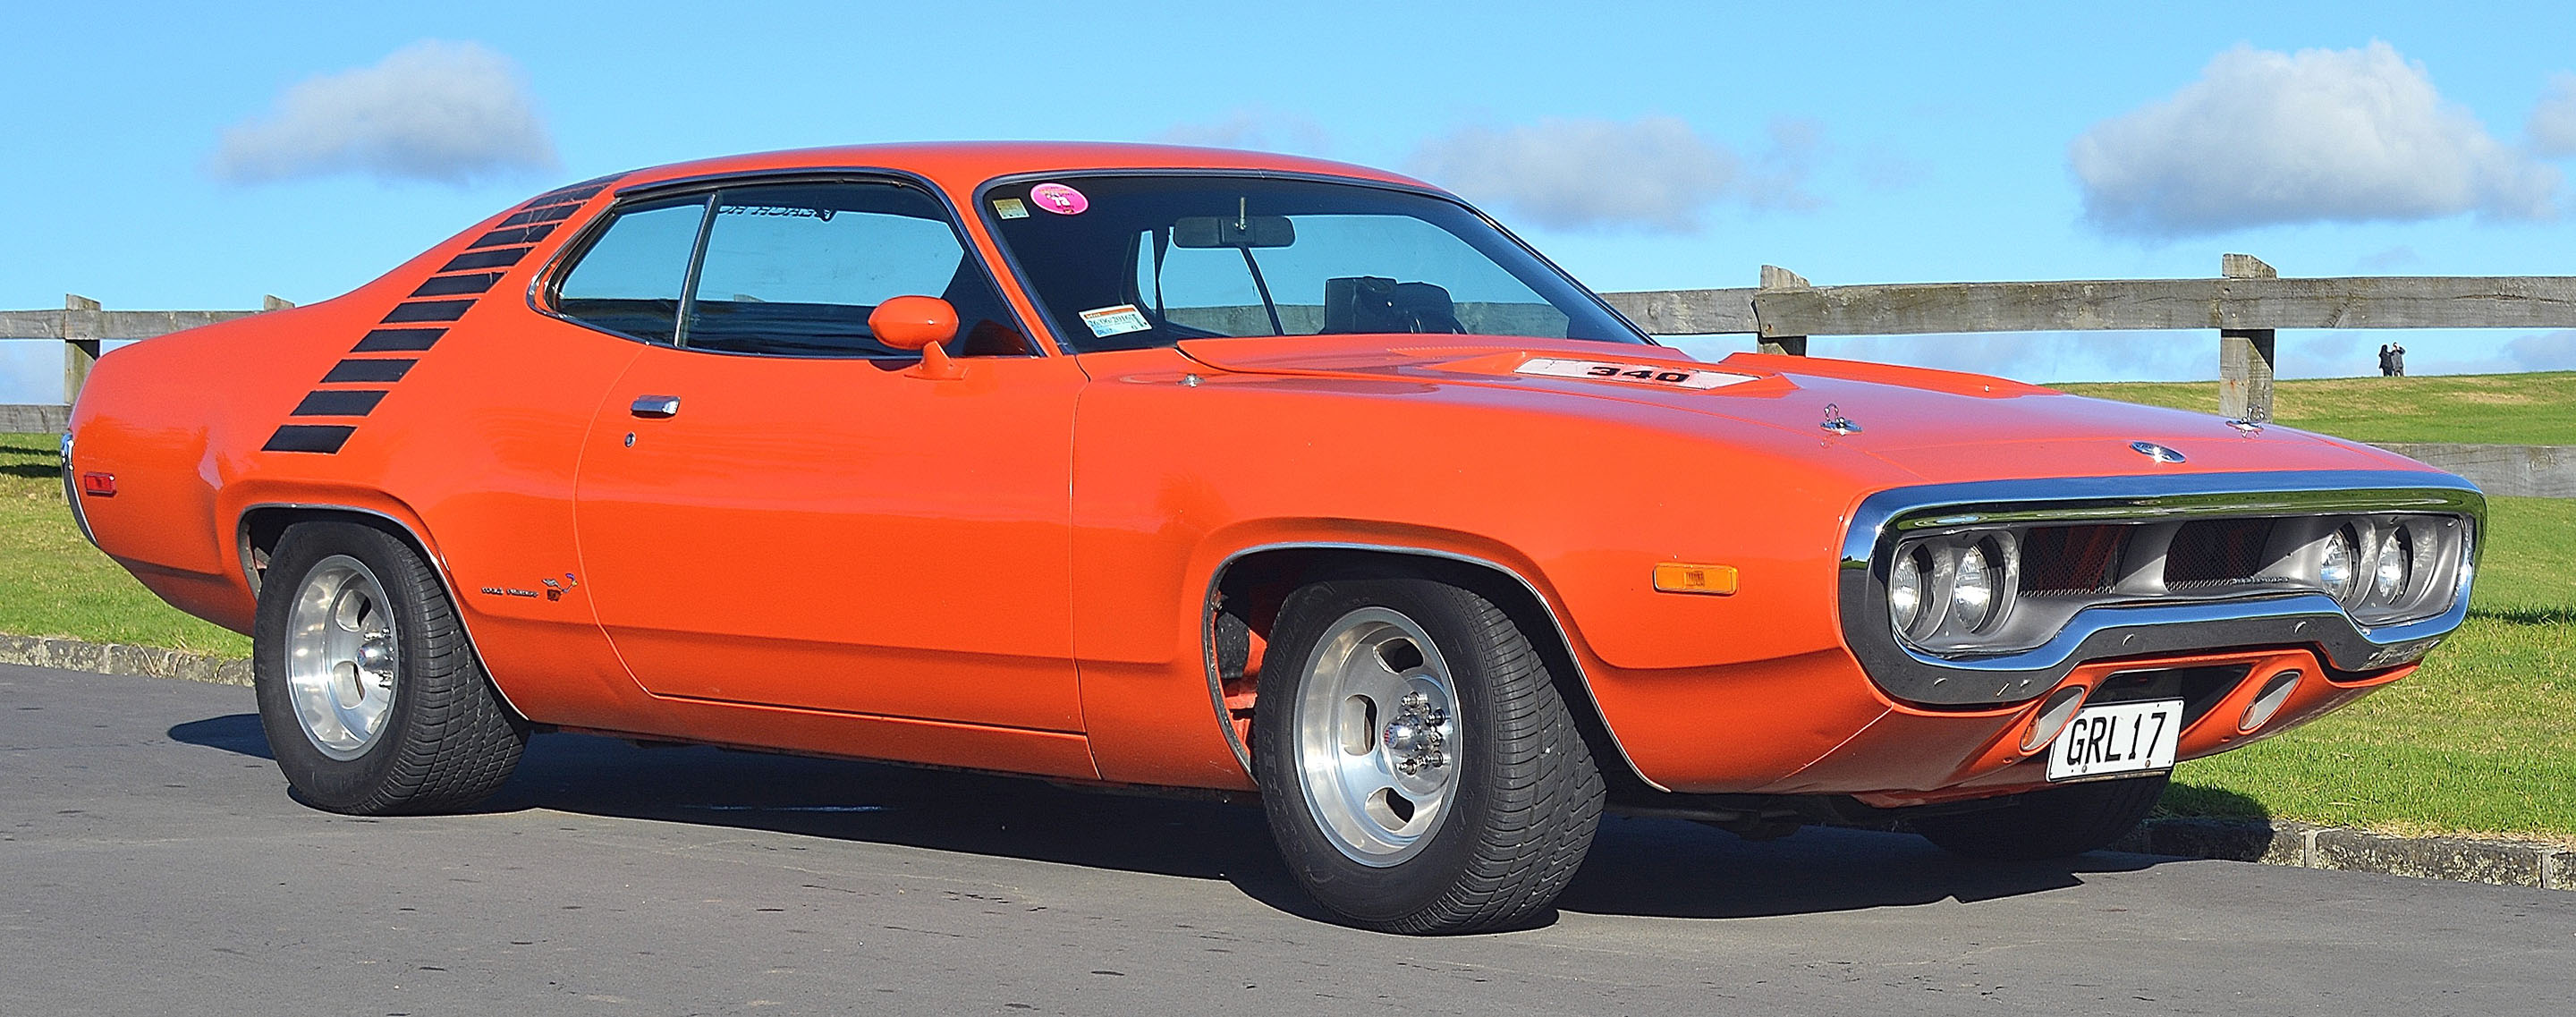 road runner 1971 muscle - photo #44